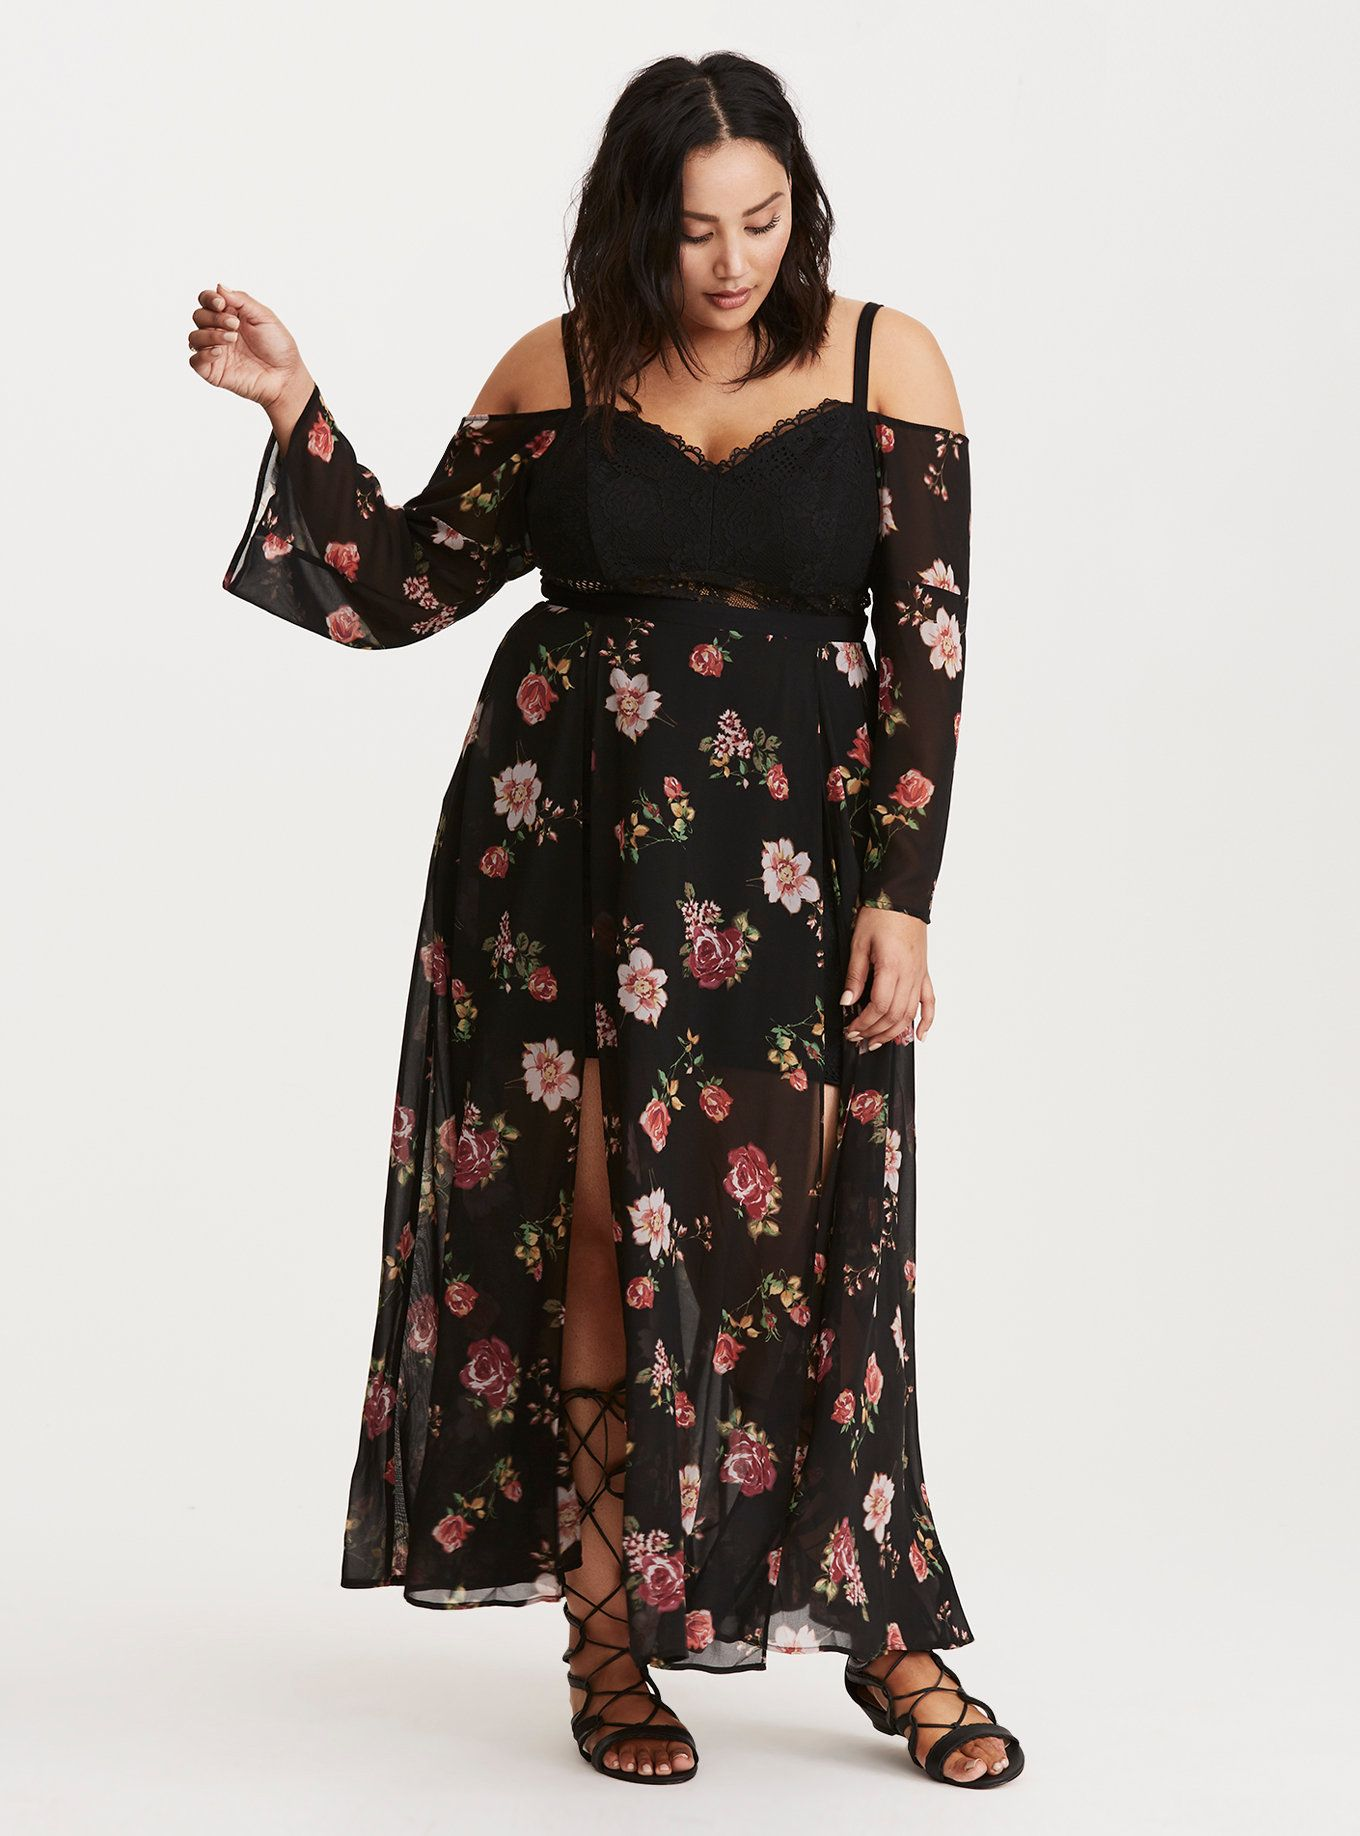 Lace dress torrid  Insider Floral Print Cold Shoulder Lace Bustier Maxi Dress  Yes